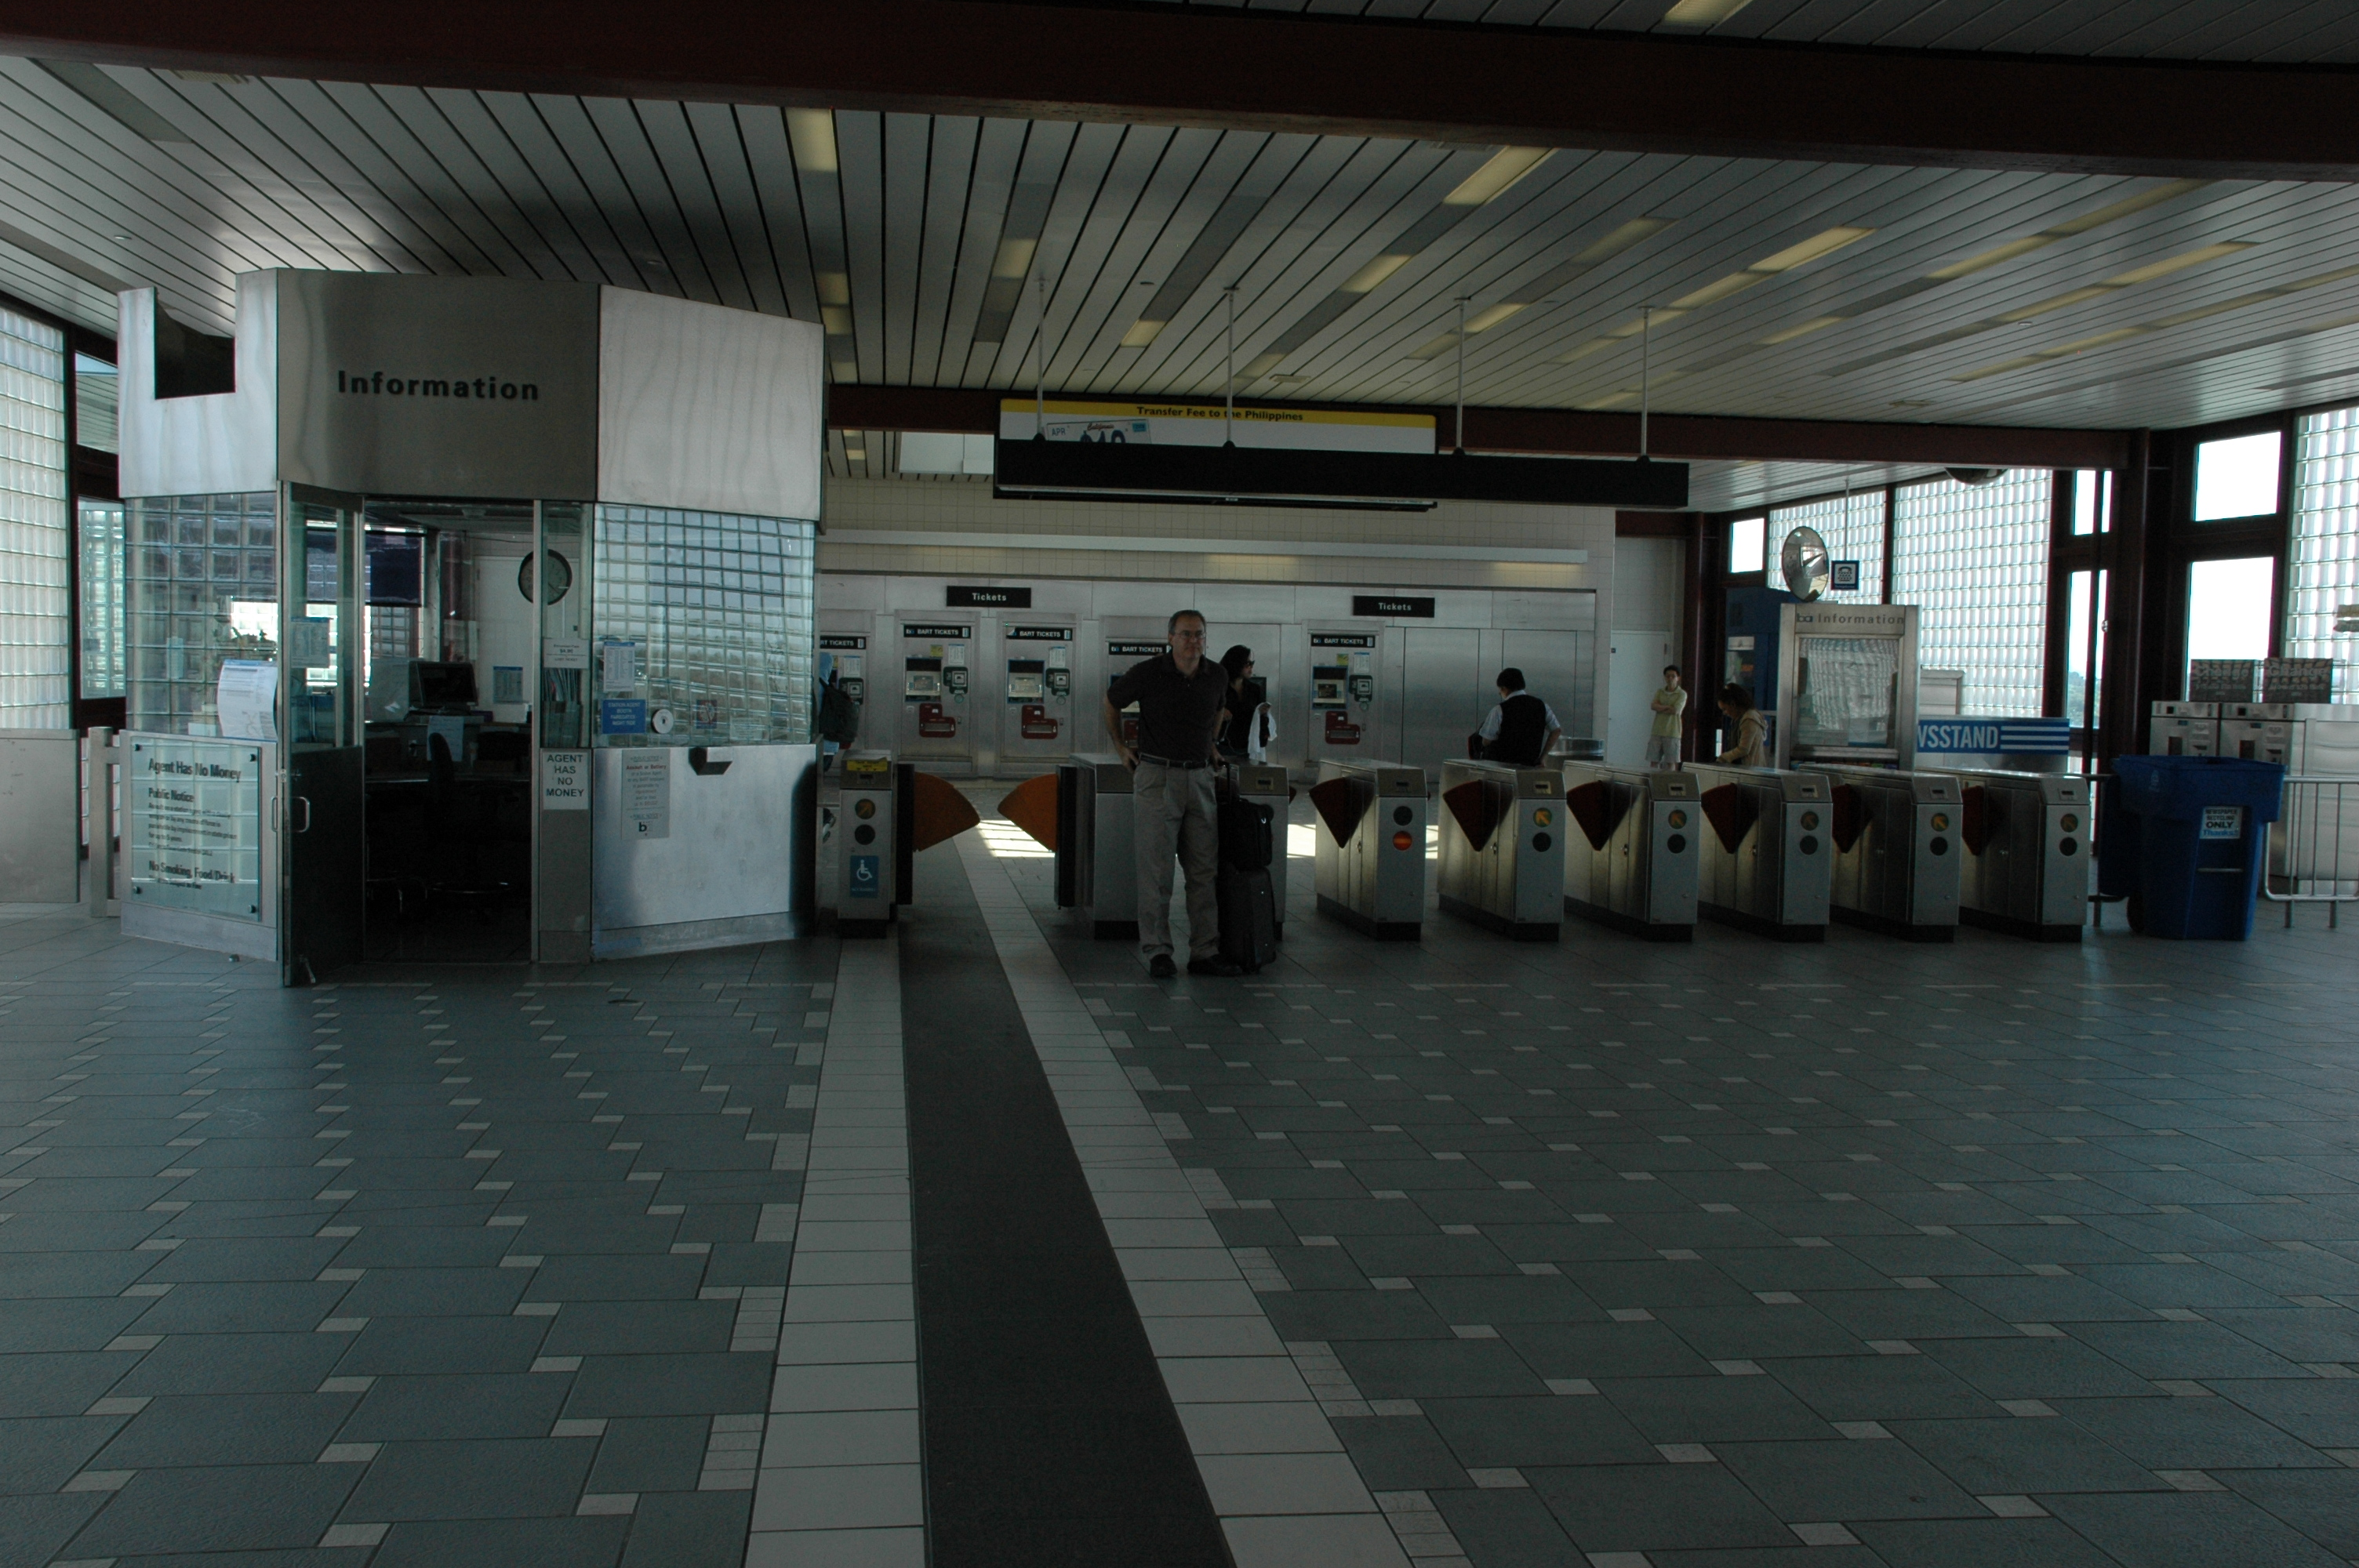 File:PBBP Ticket Gates jpg - Wikimedia Commons